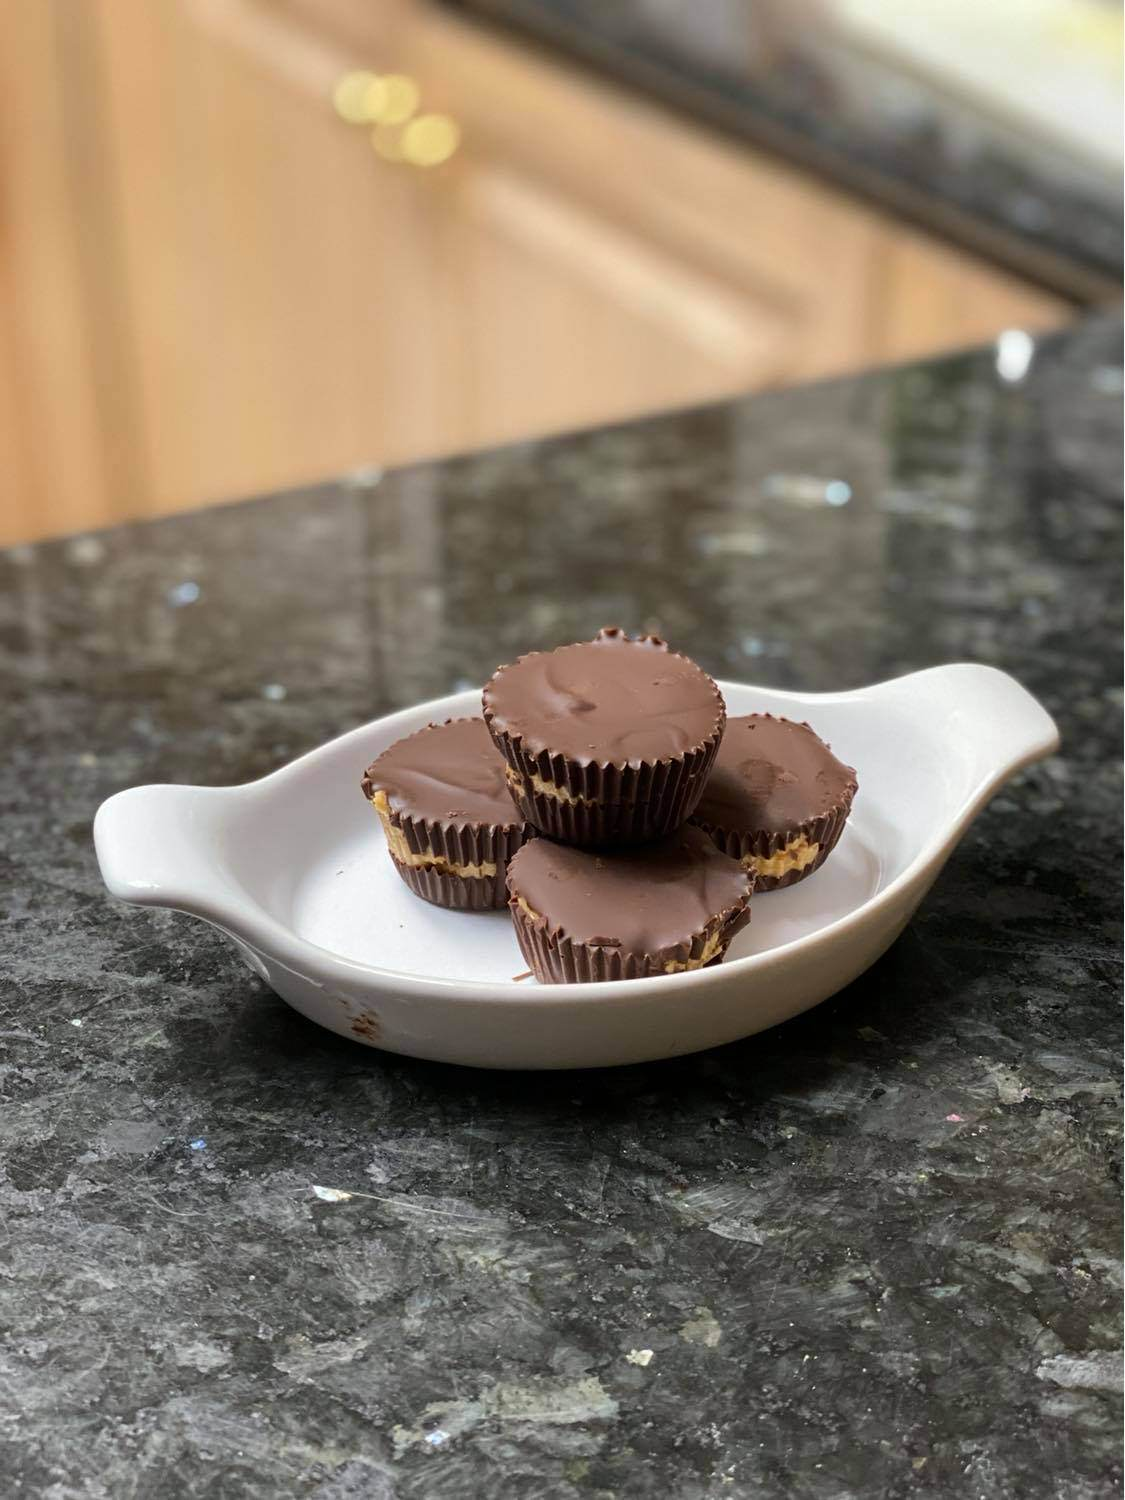 Homemade Healthy Peanut Butter Cups